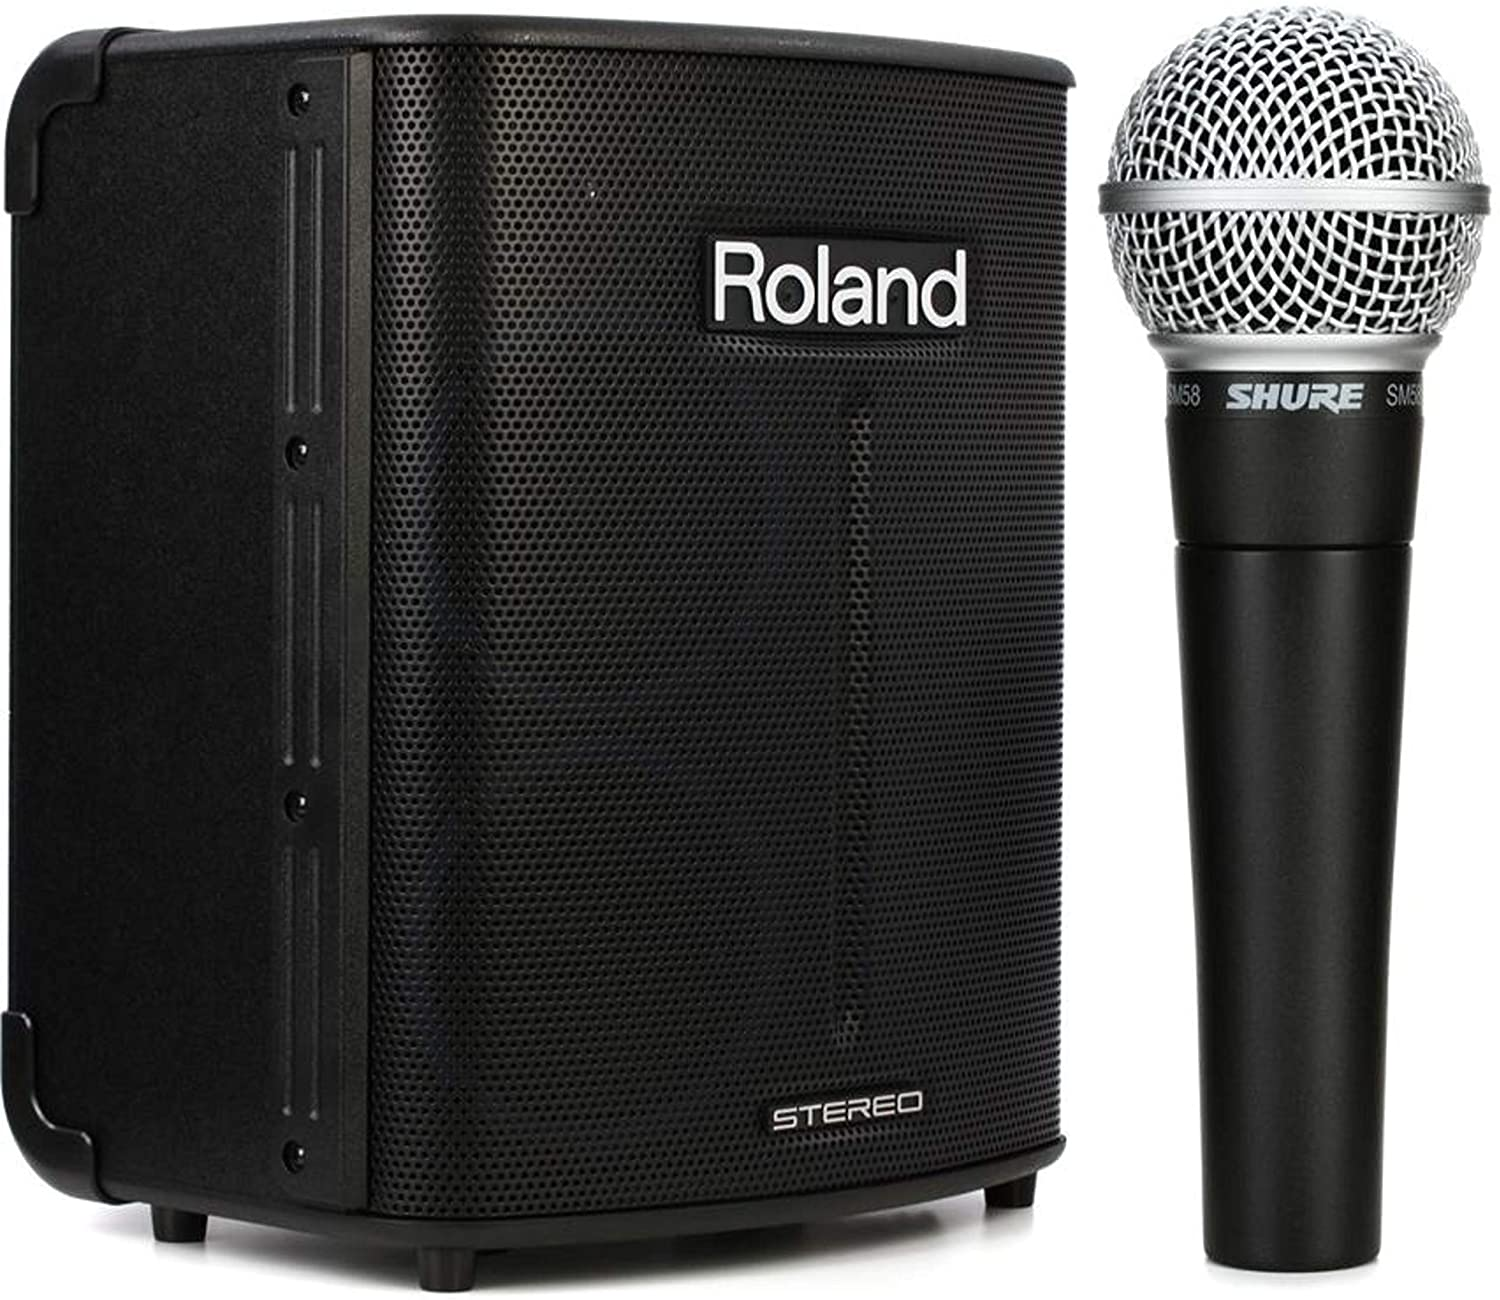 Roland BA-330 Portable Stereo PA System + Shure SM58 Cardioid Dynamic Vocal Microphone Value Bundle